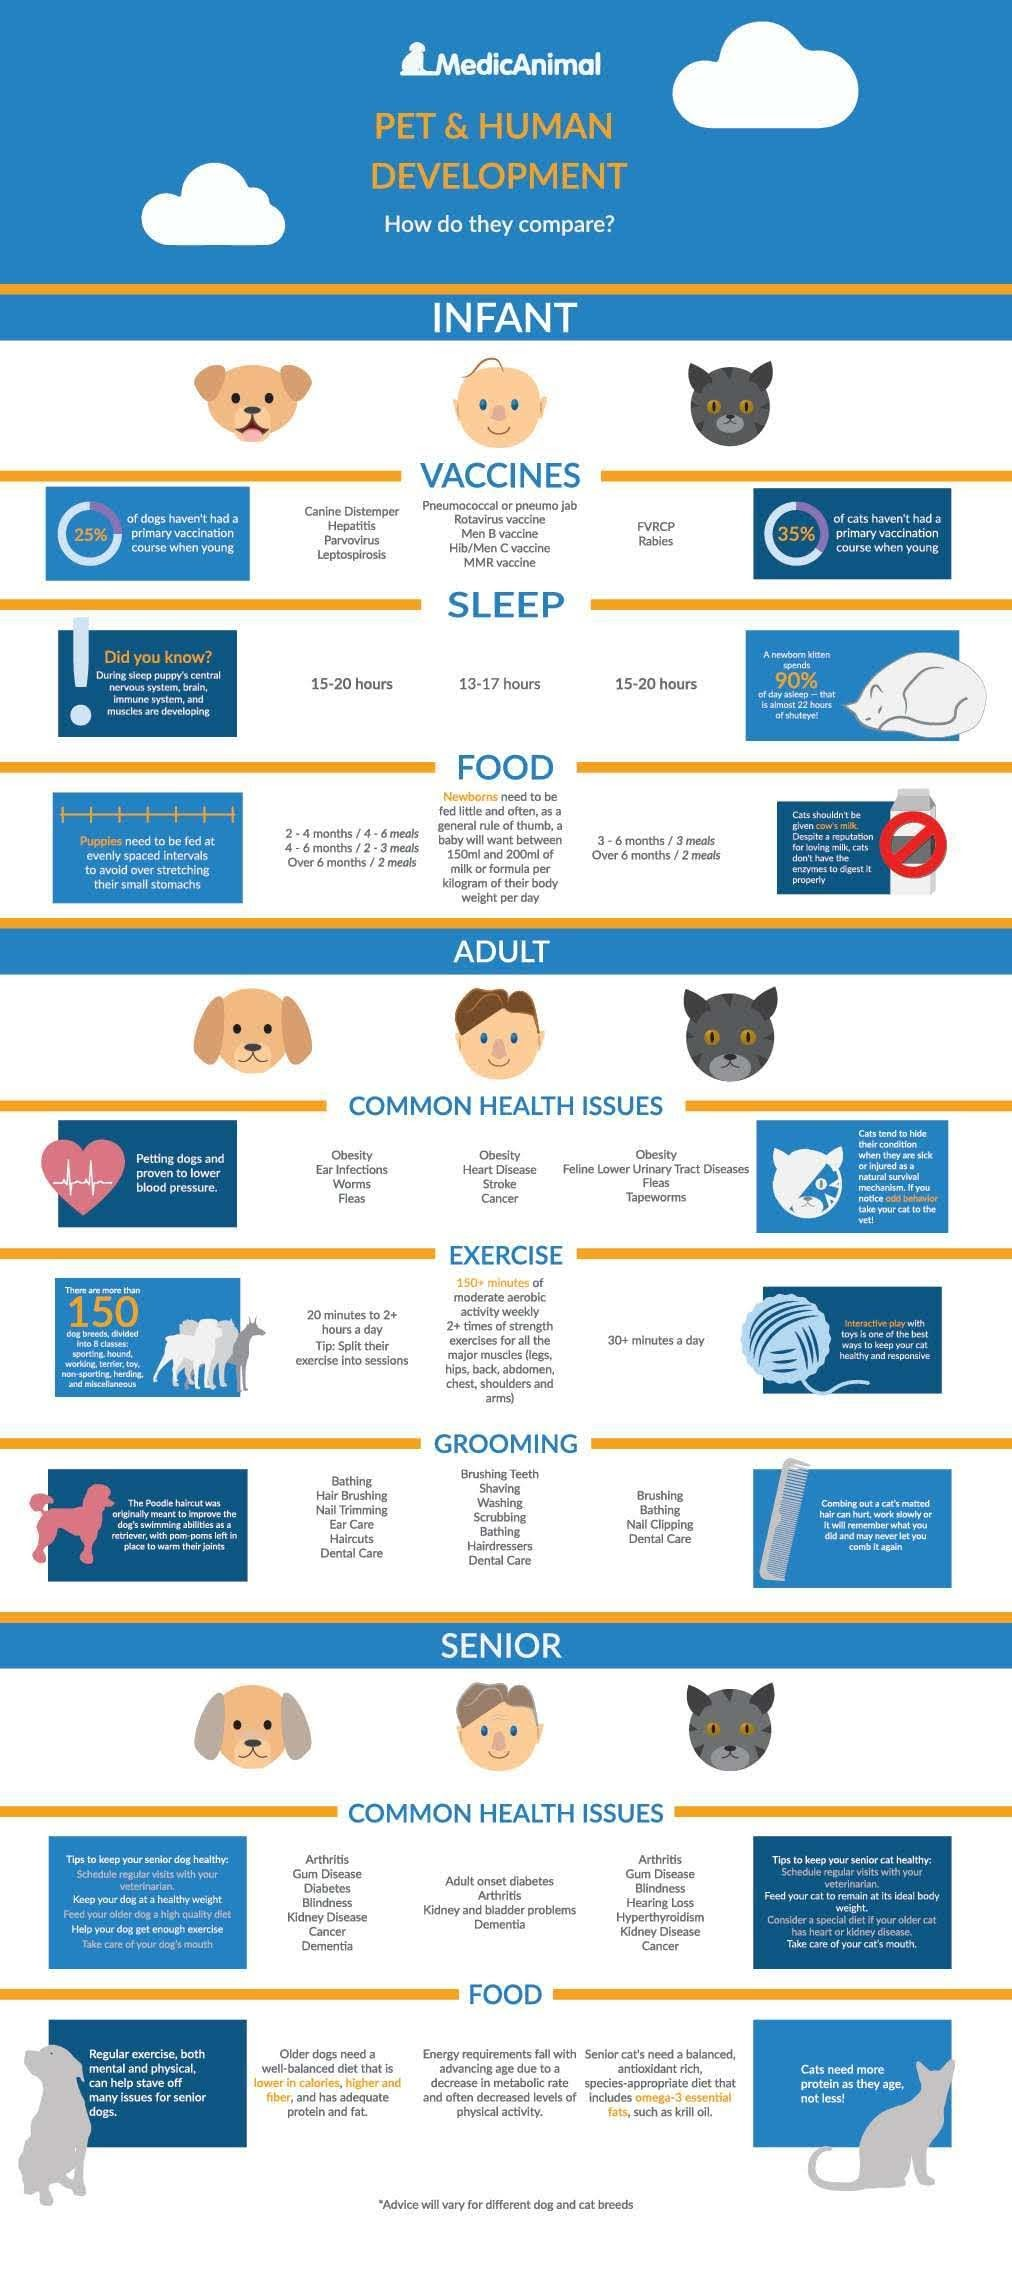 Pet and Human Development How Do They Compare #infographic